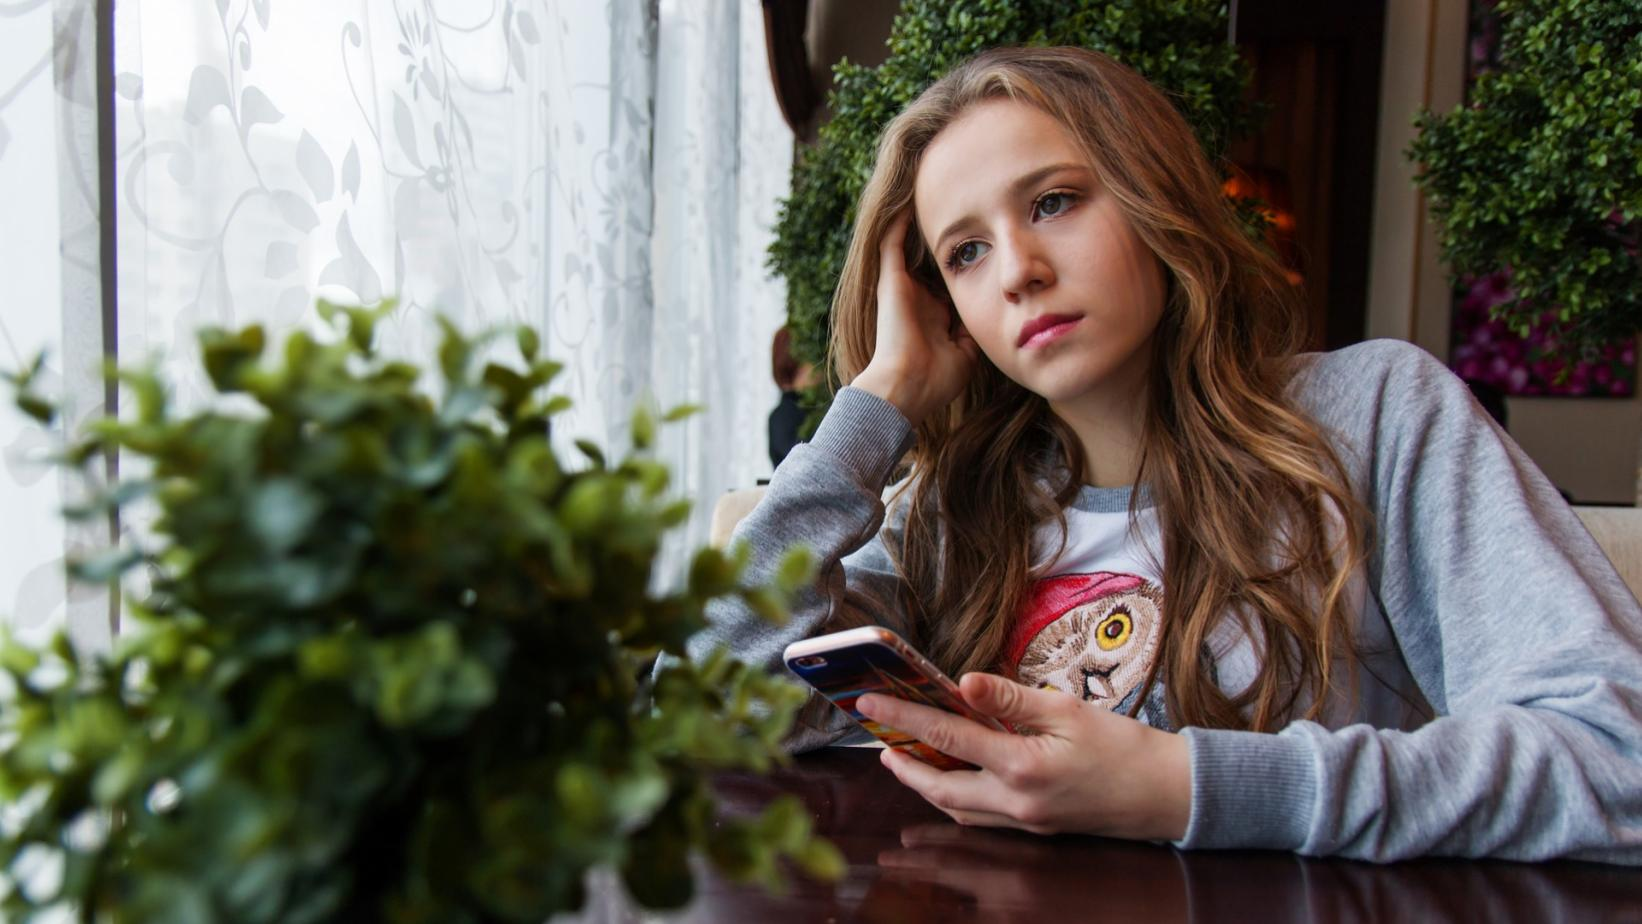 Sad looking teenage girl holding phone in hands